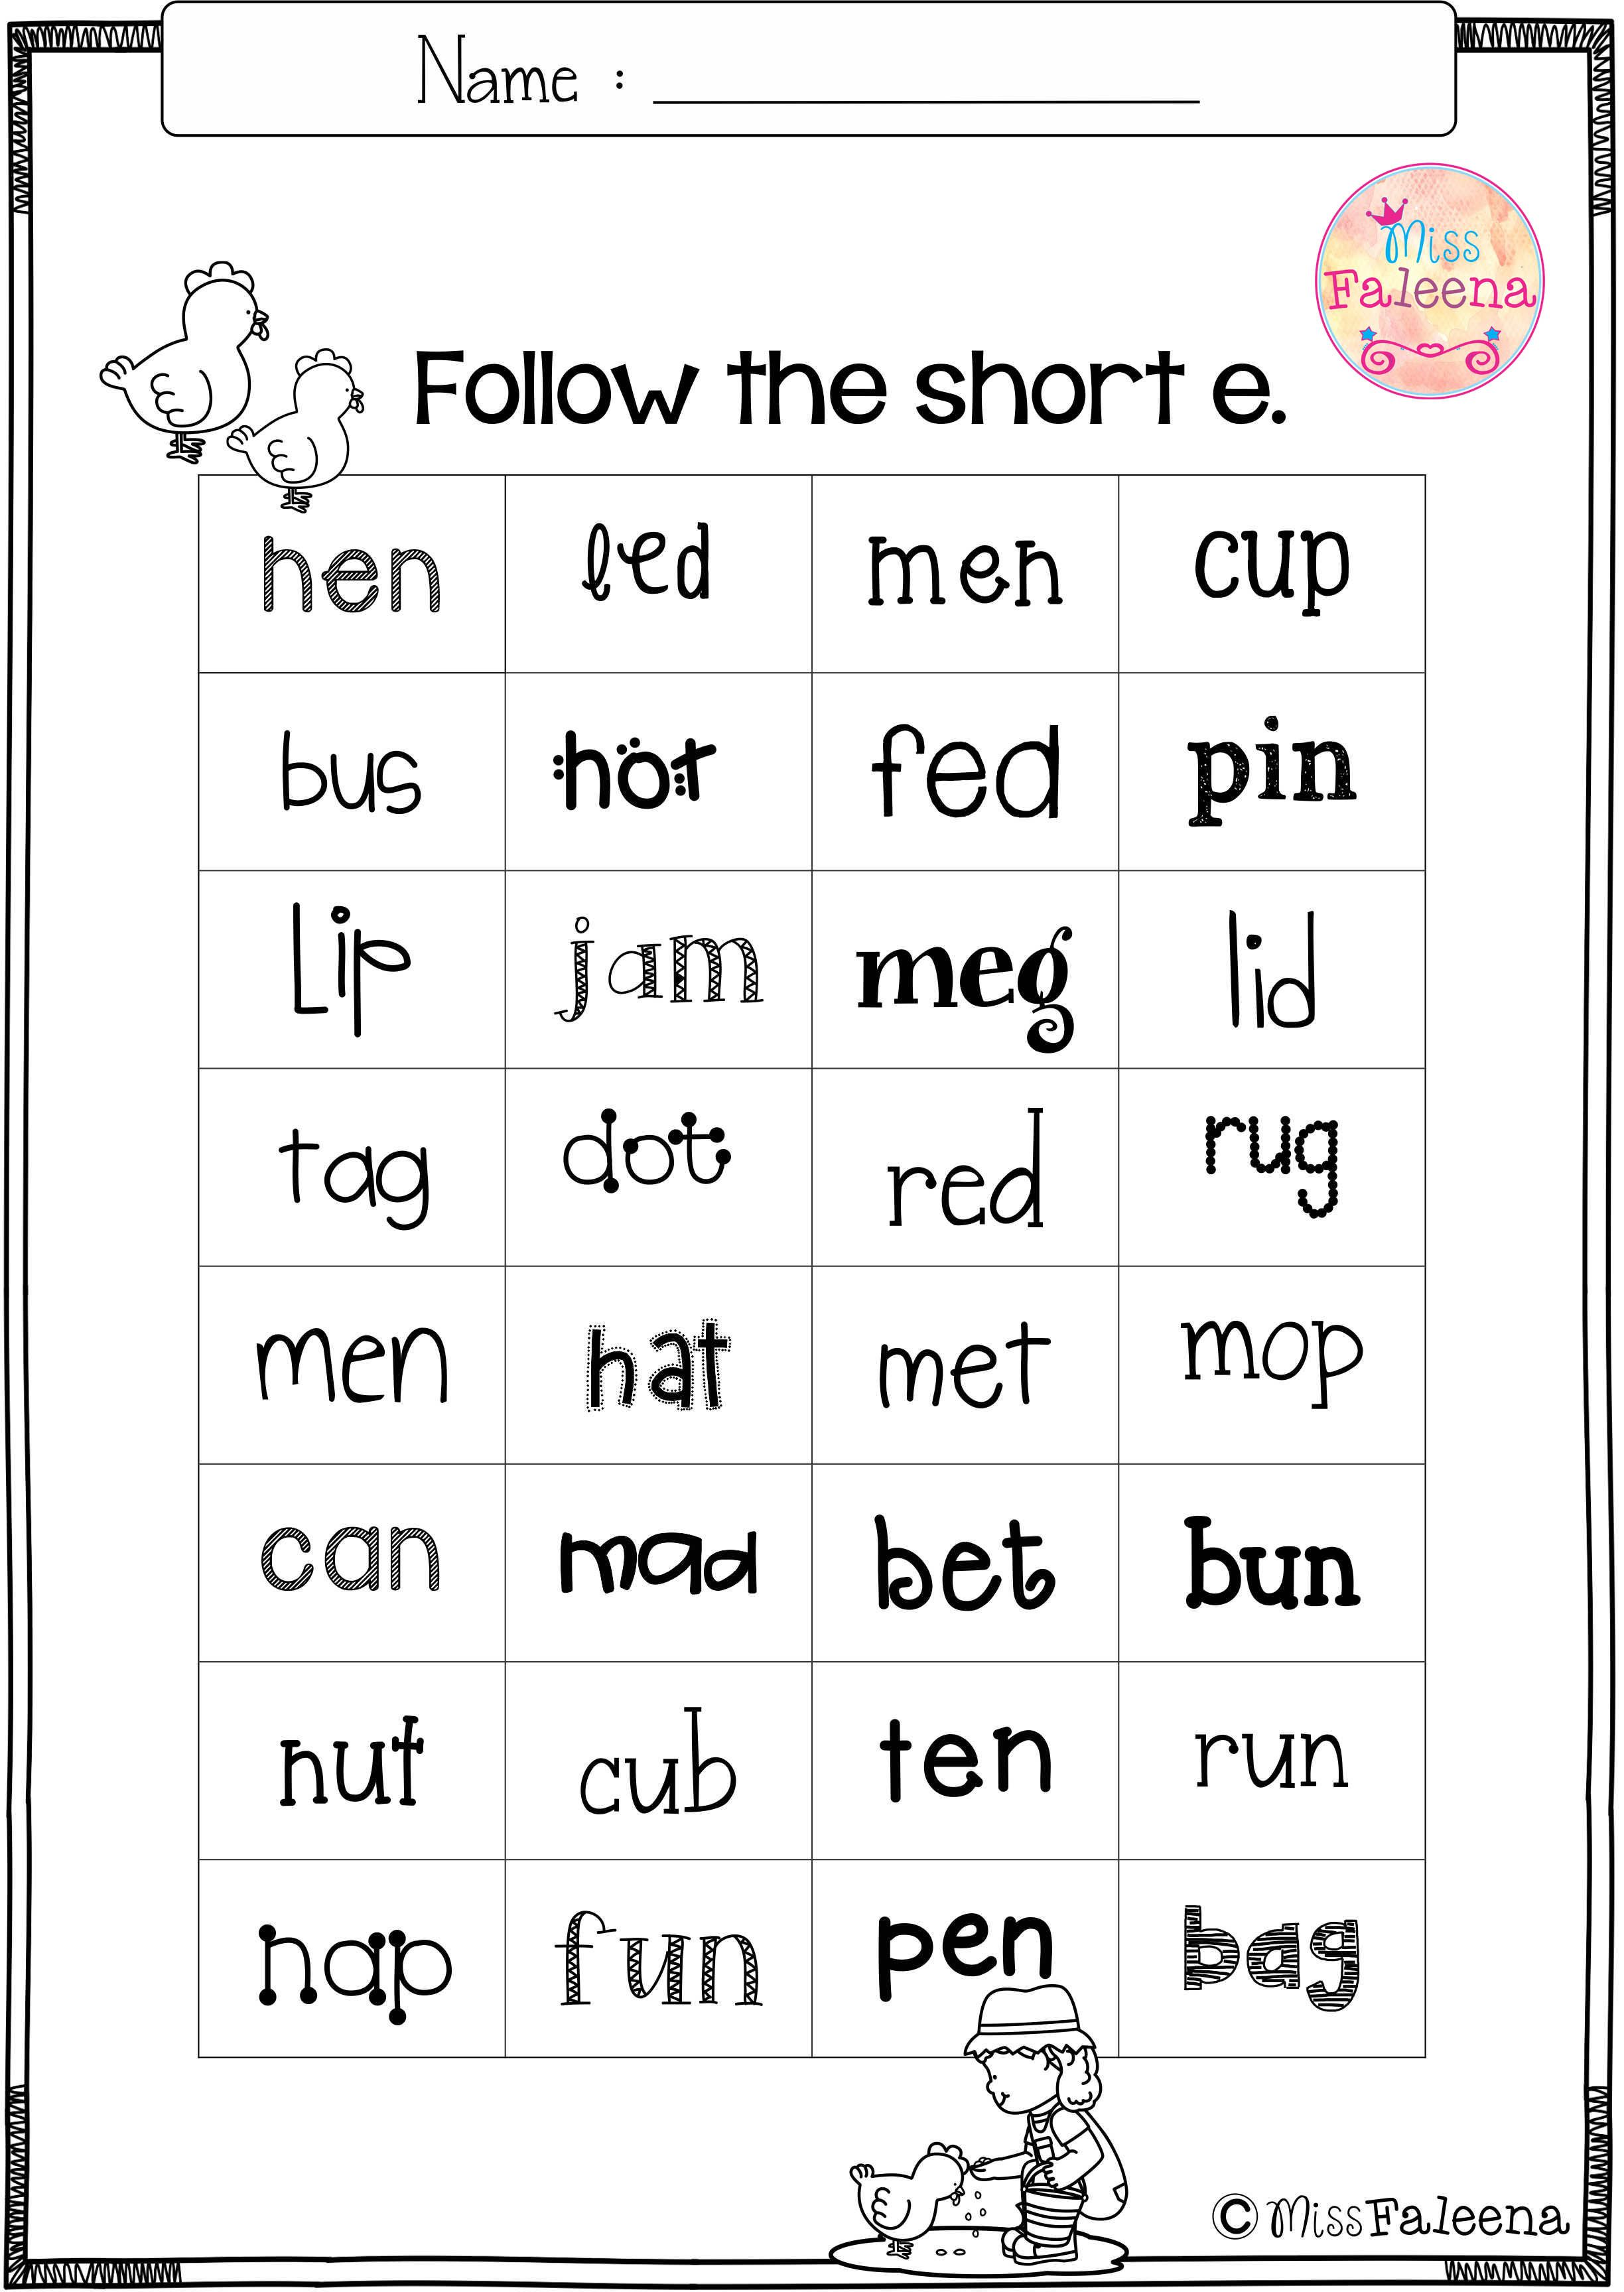 Worksheets Cvc Words Worksheets free cvc short e is designed to help teach children read build word exercise e